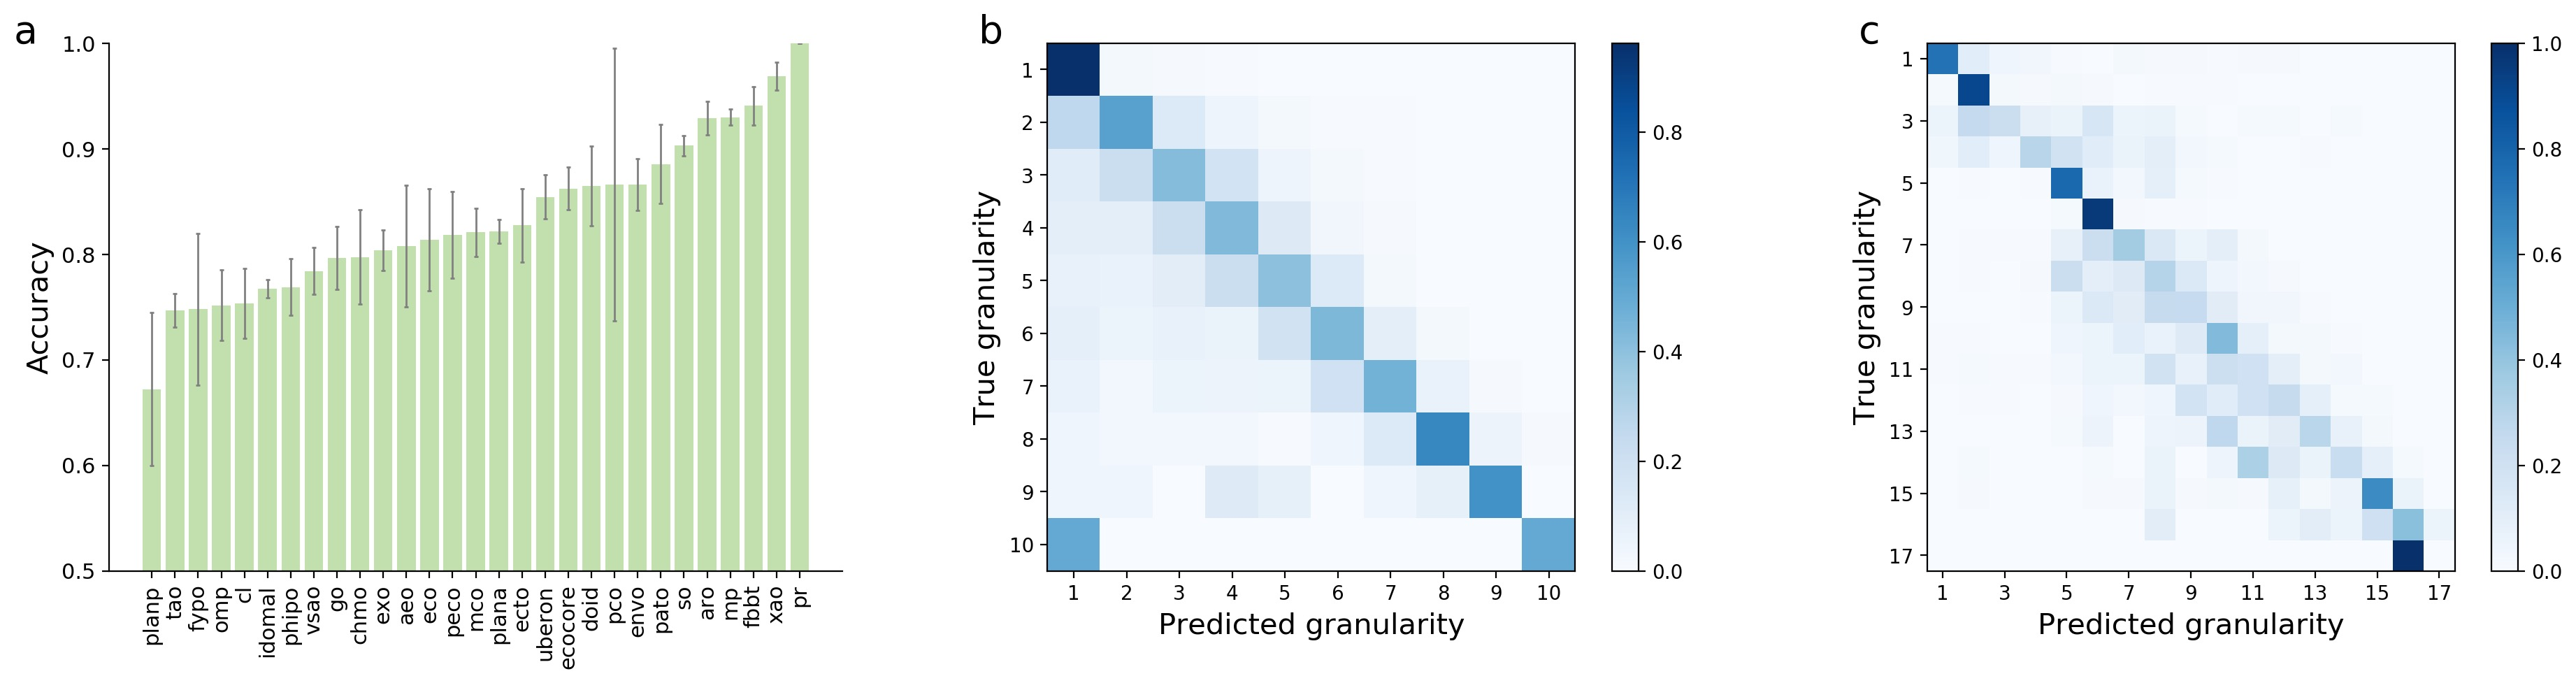 Sentence granularity prediction. a, Bar plot showing the accuracy of relative granularity prediction within each DAG. b,c, Heatmaps showing the accuracy of absolute granularity prediction within each DAG (b) and across all DAGs (c).